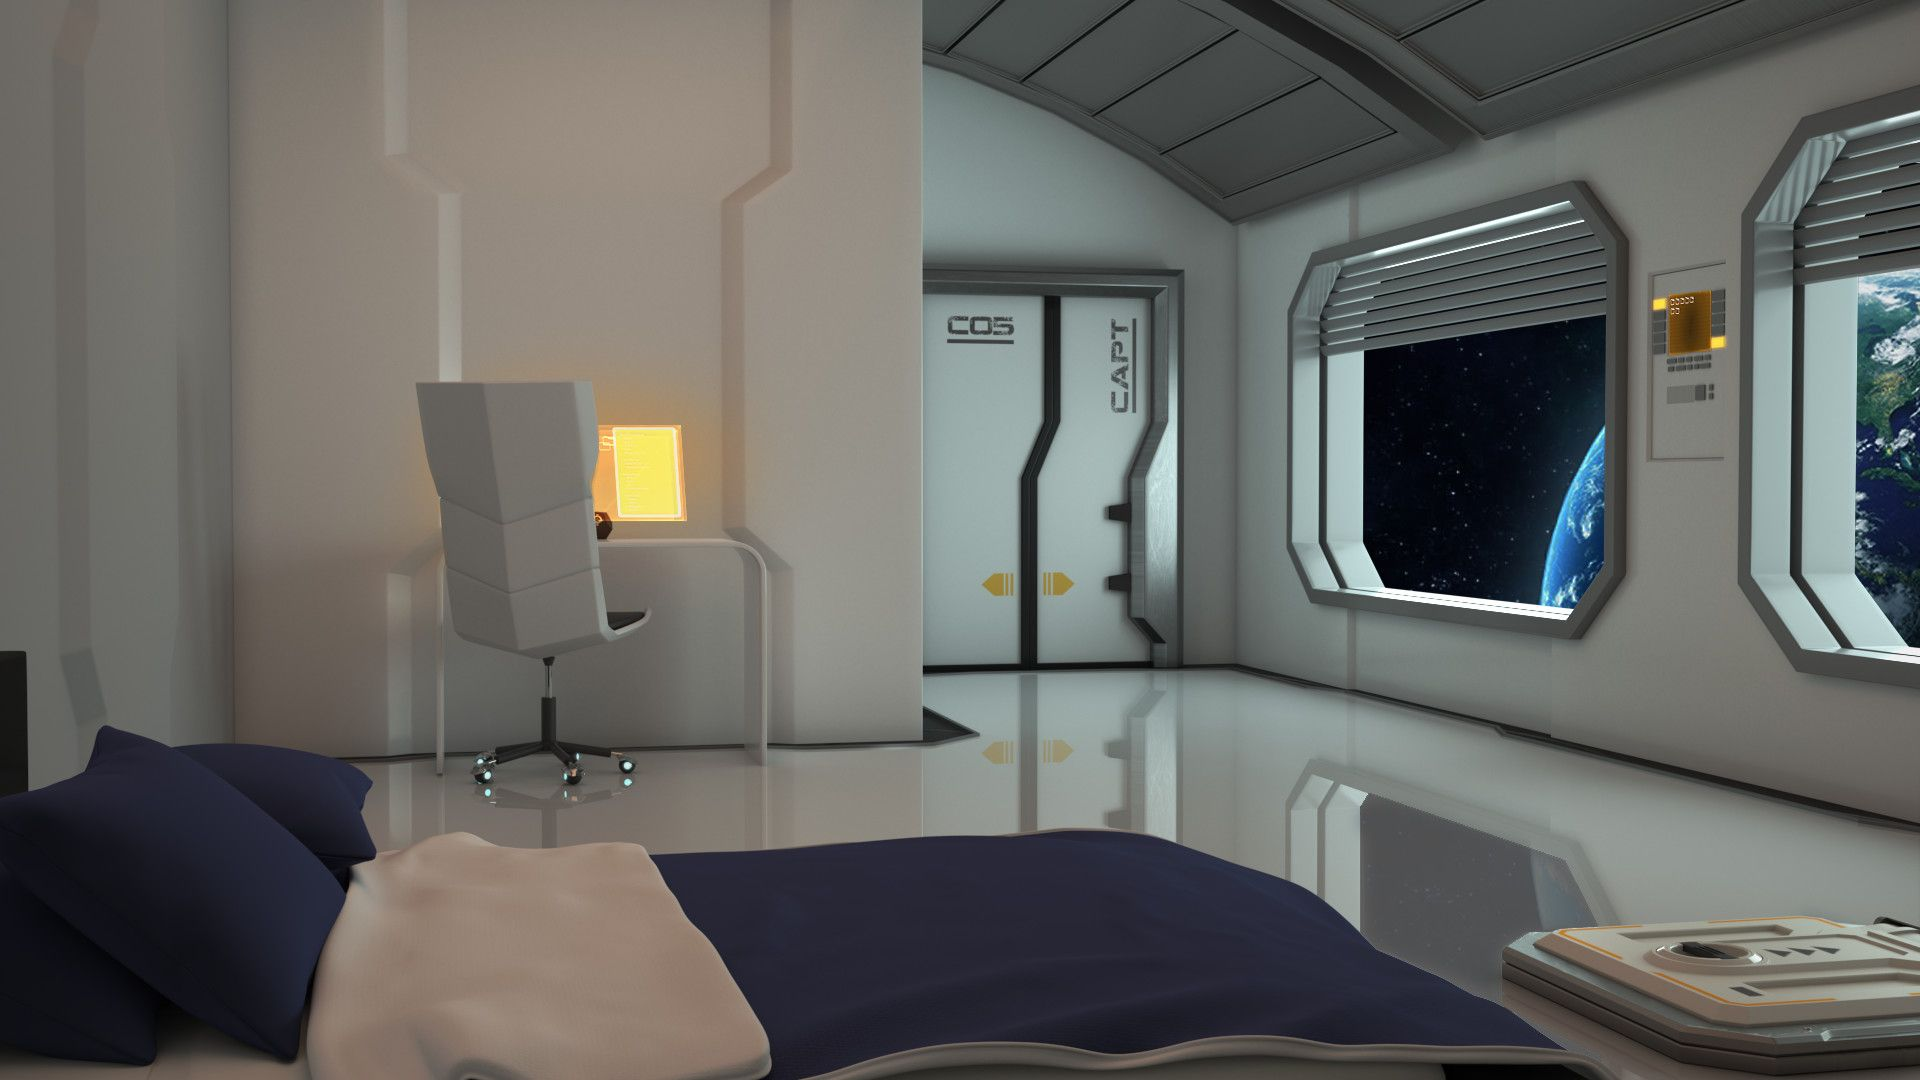 Sci fi home wallpapers top free sci fi home backgrounds for Sci fi decor